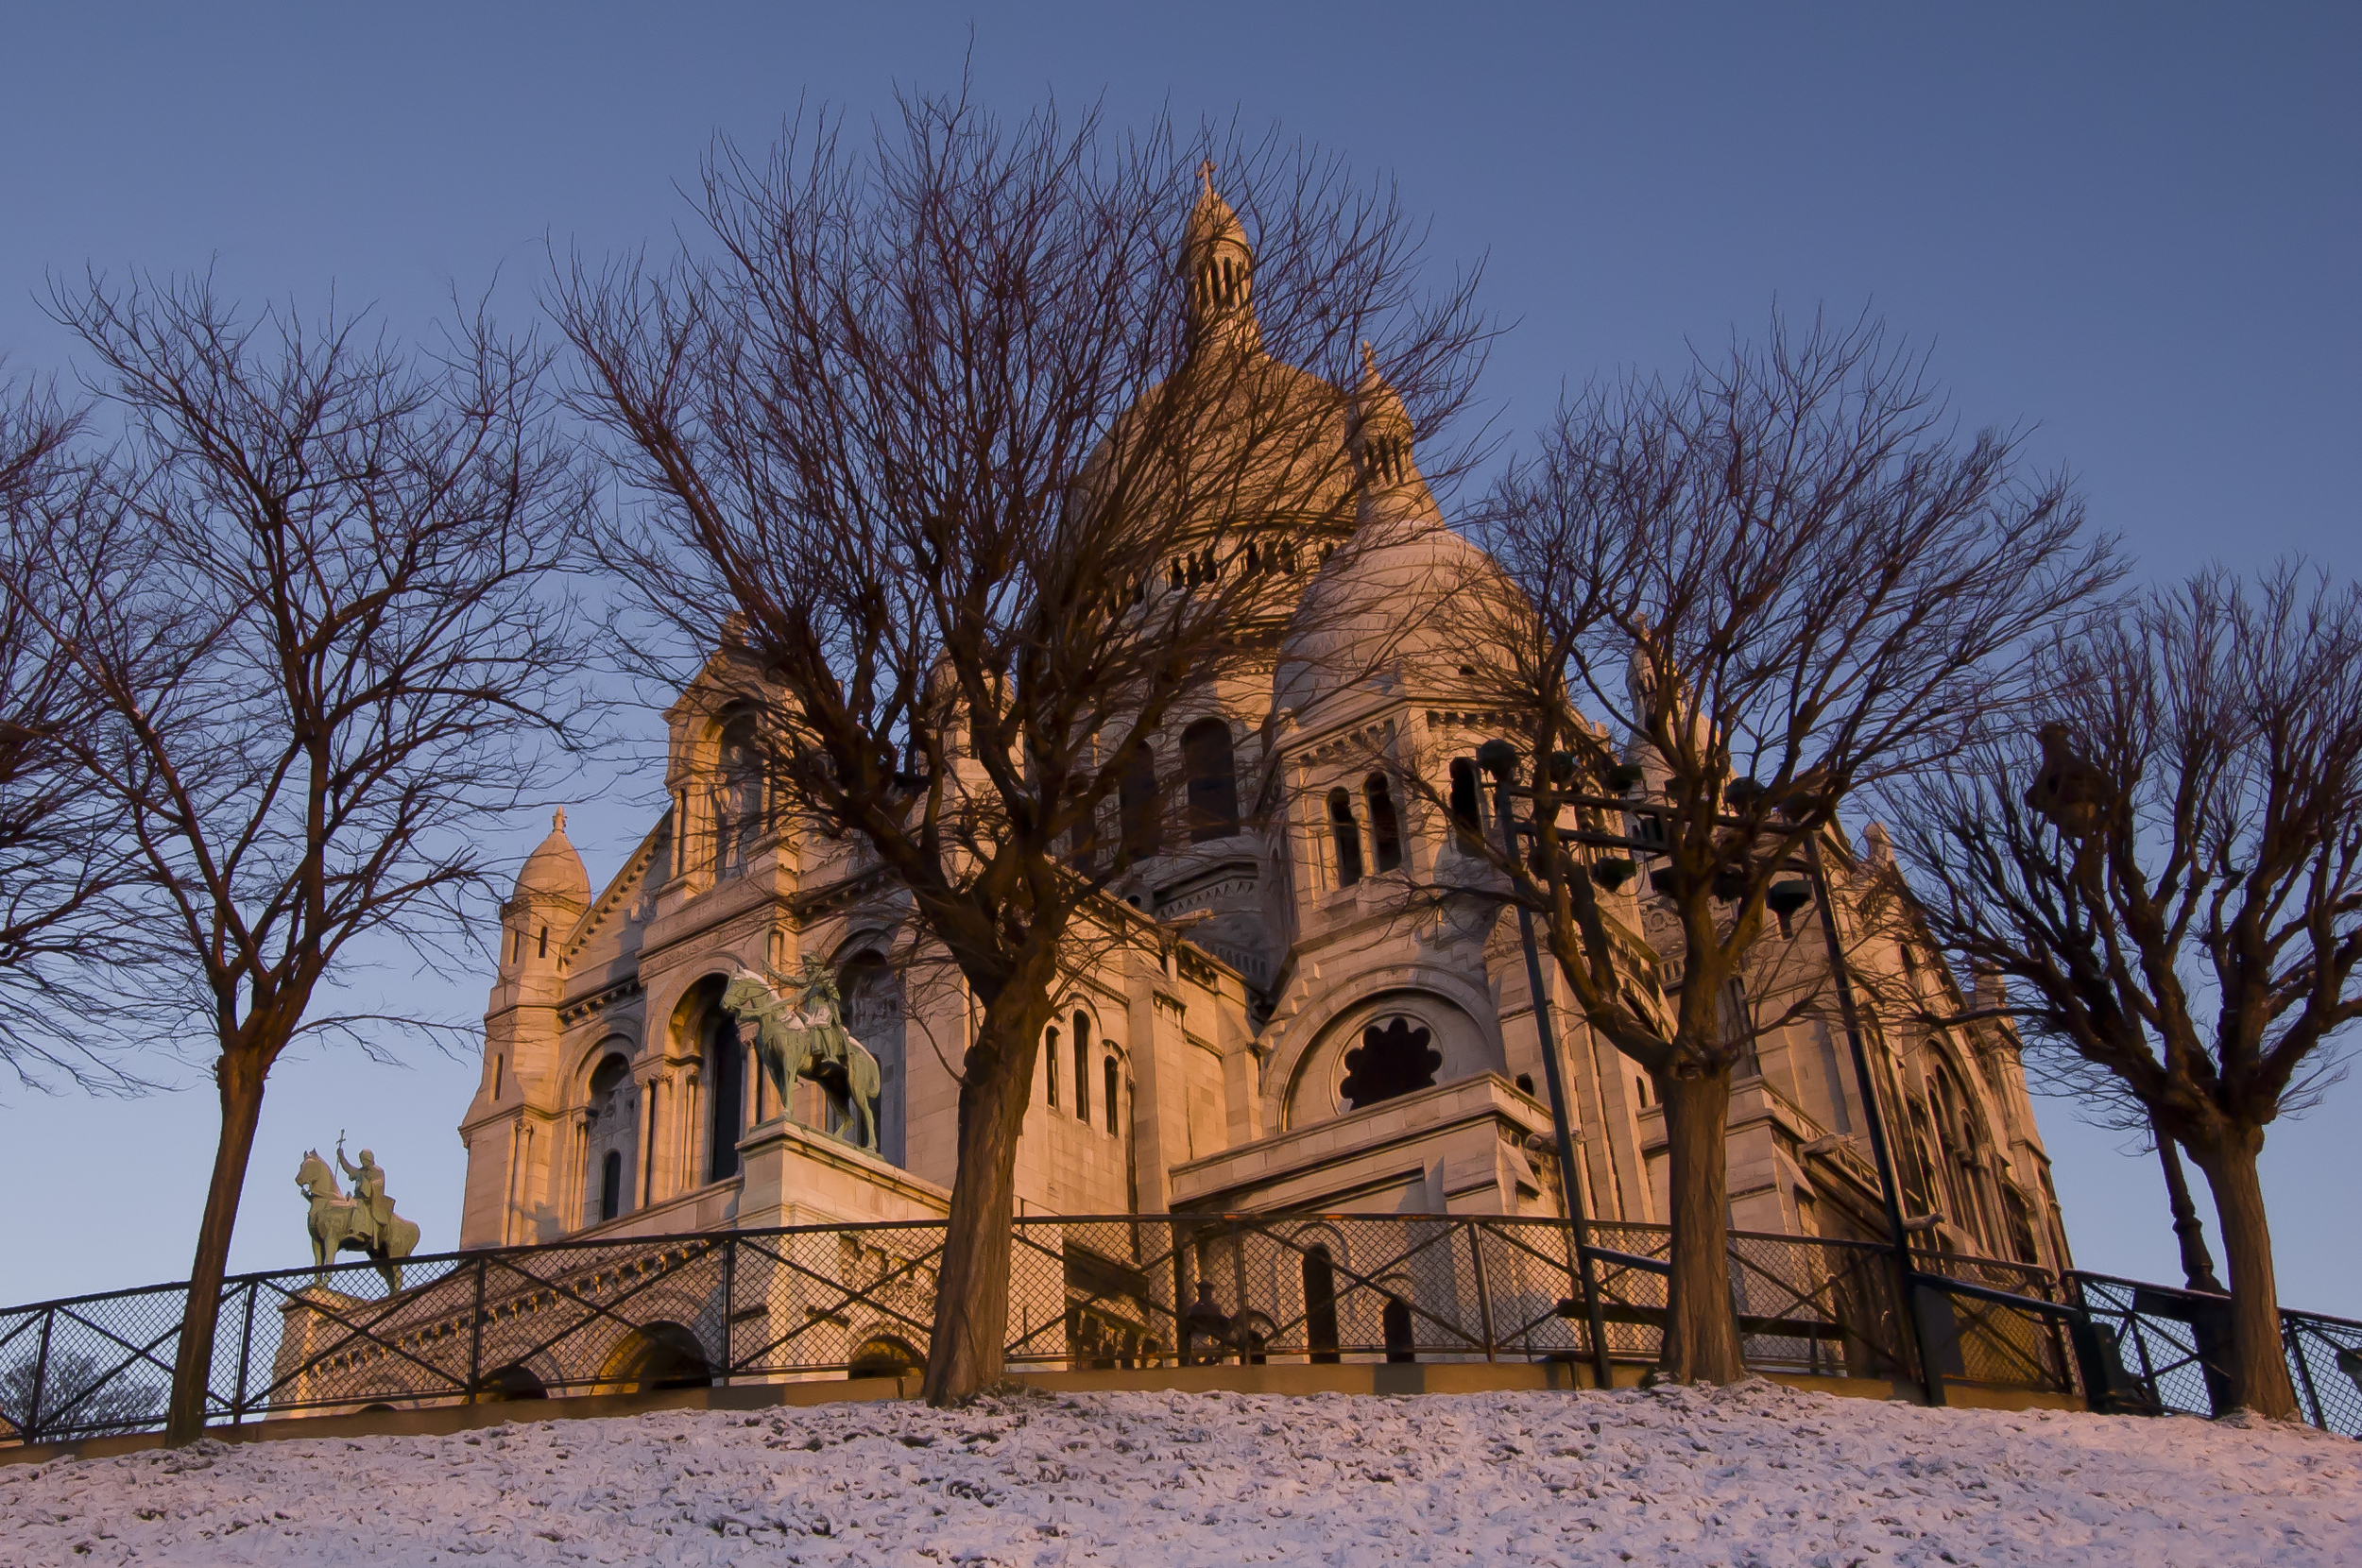 A fresh blanket of snow reflects the morning light as beautifully as my favorite basilica.